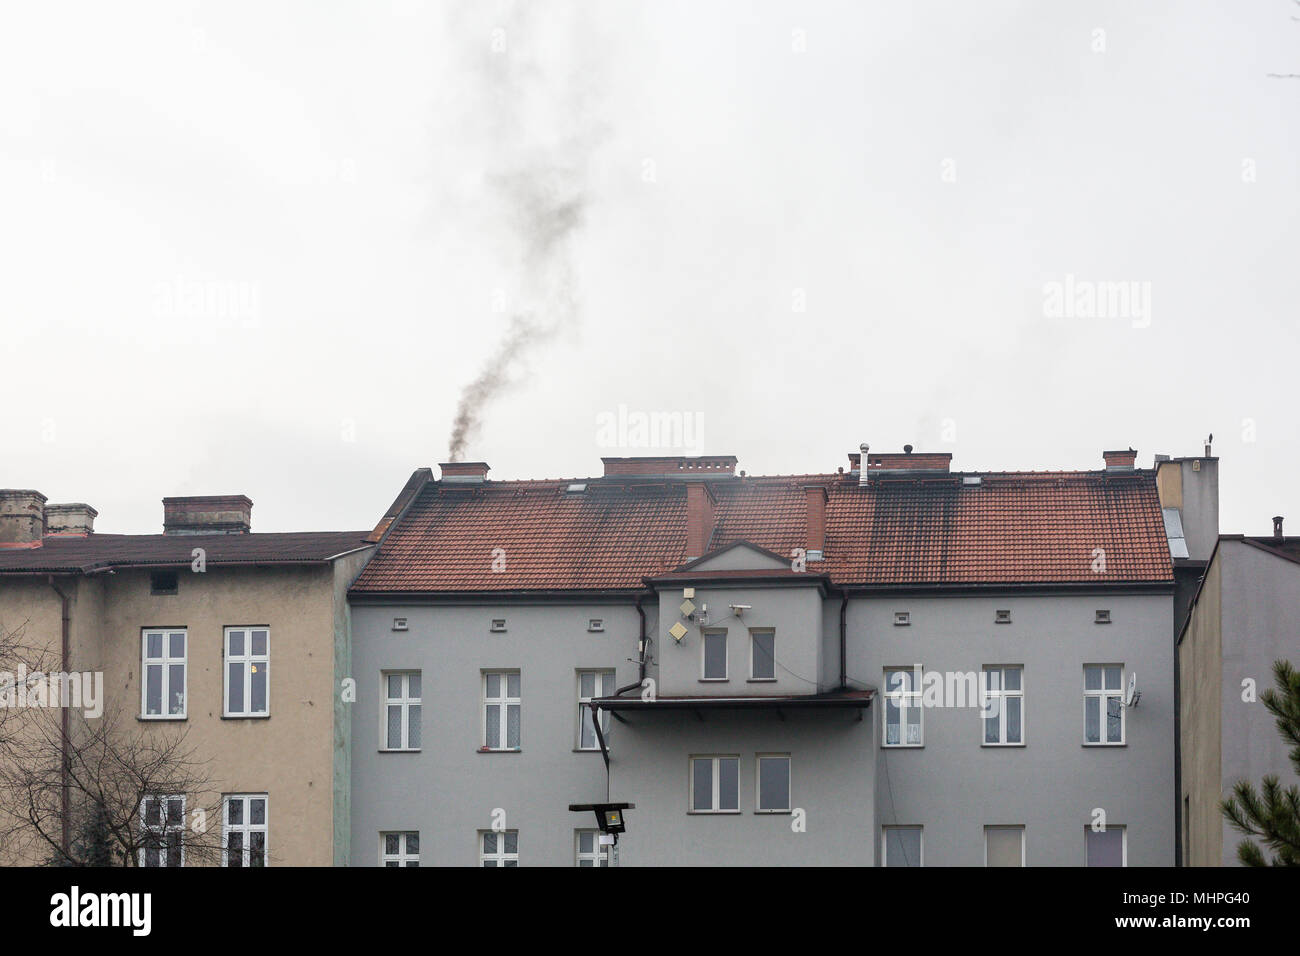 Oswiecim, Poland - Black smoke coming out of the tenement house`s chimney while coal-loving Poland struggles with killer smog. Air pollution. - Stock Image